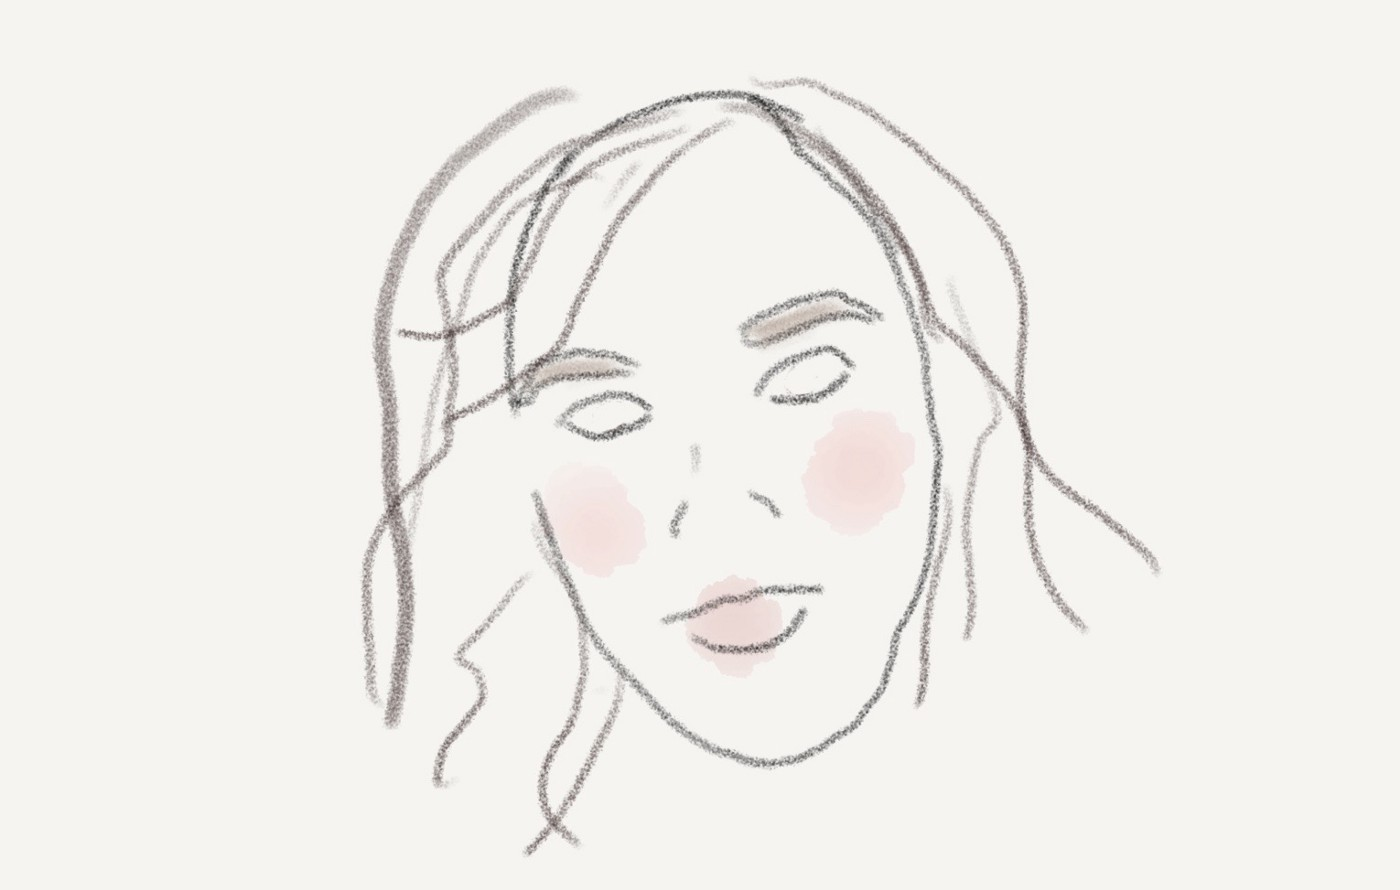 A pencil sketch of Amy's face, with blotches of pink on the cheeks and lips.